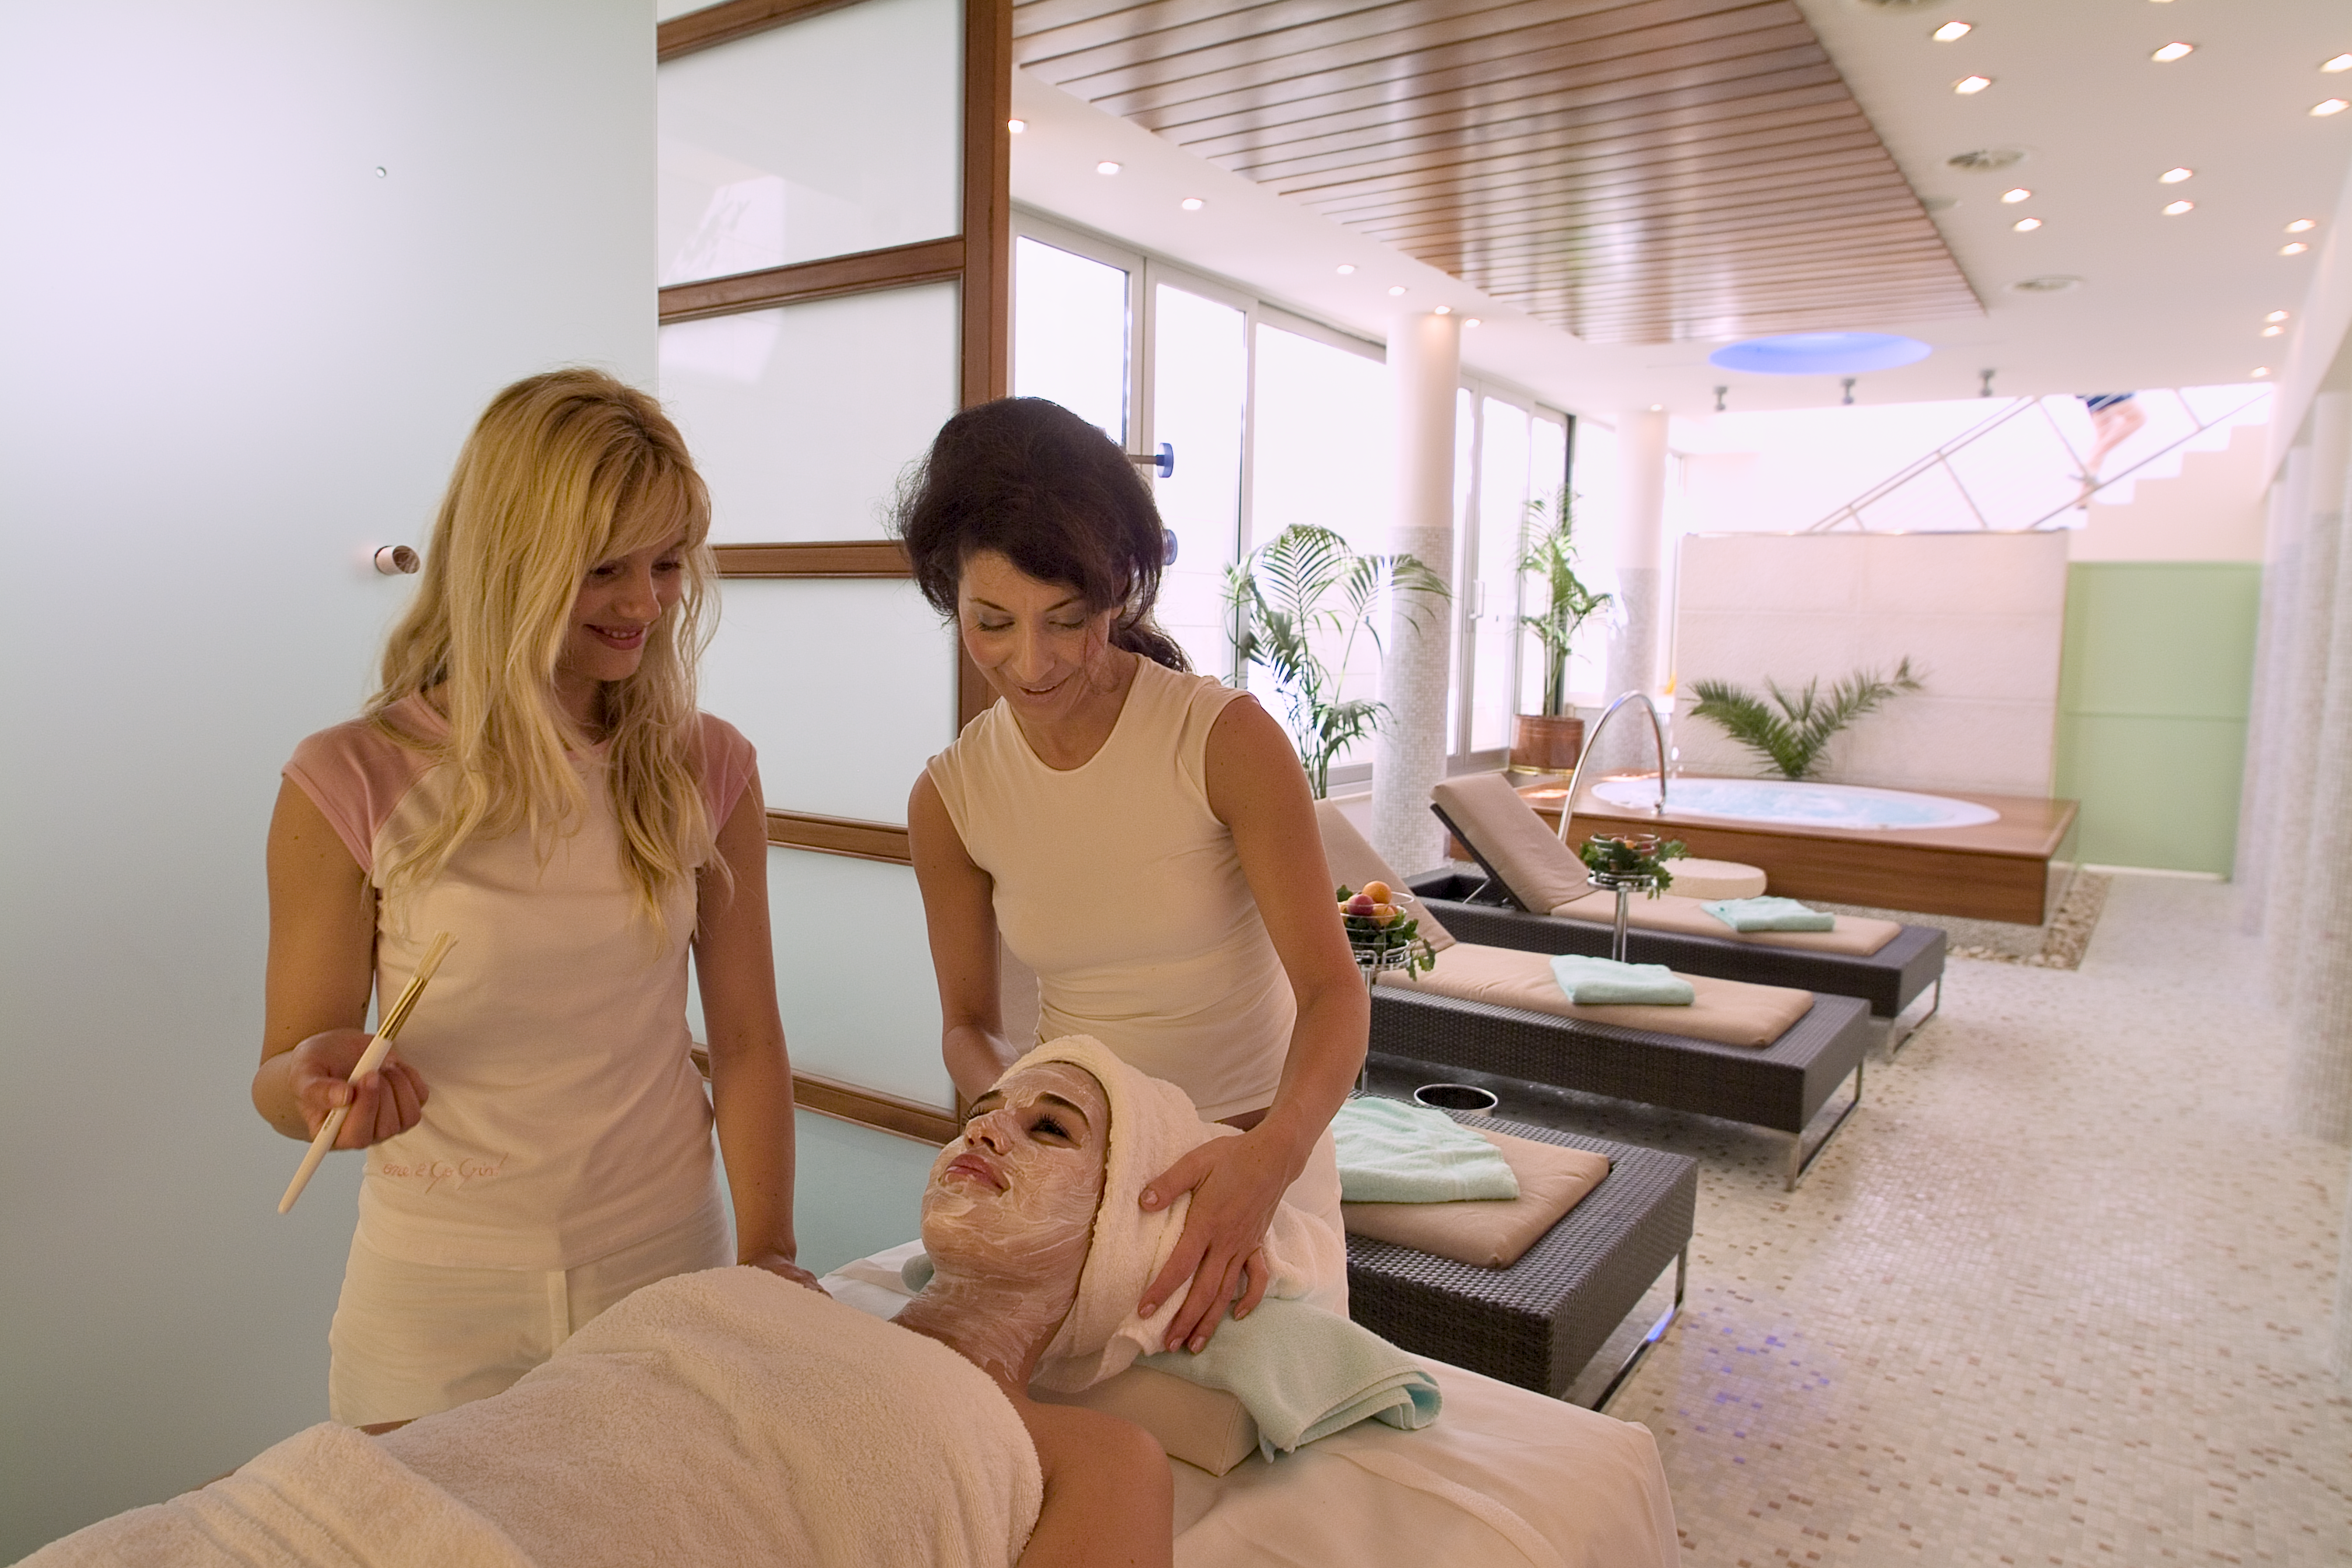 uvala-hotel-wellness-spa-massage-facial.